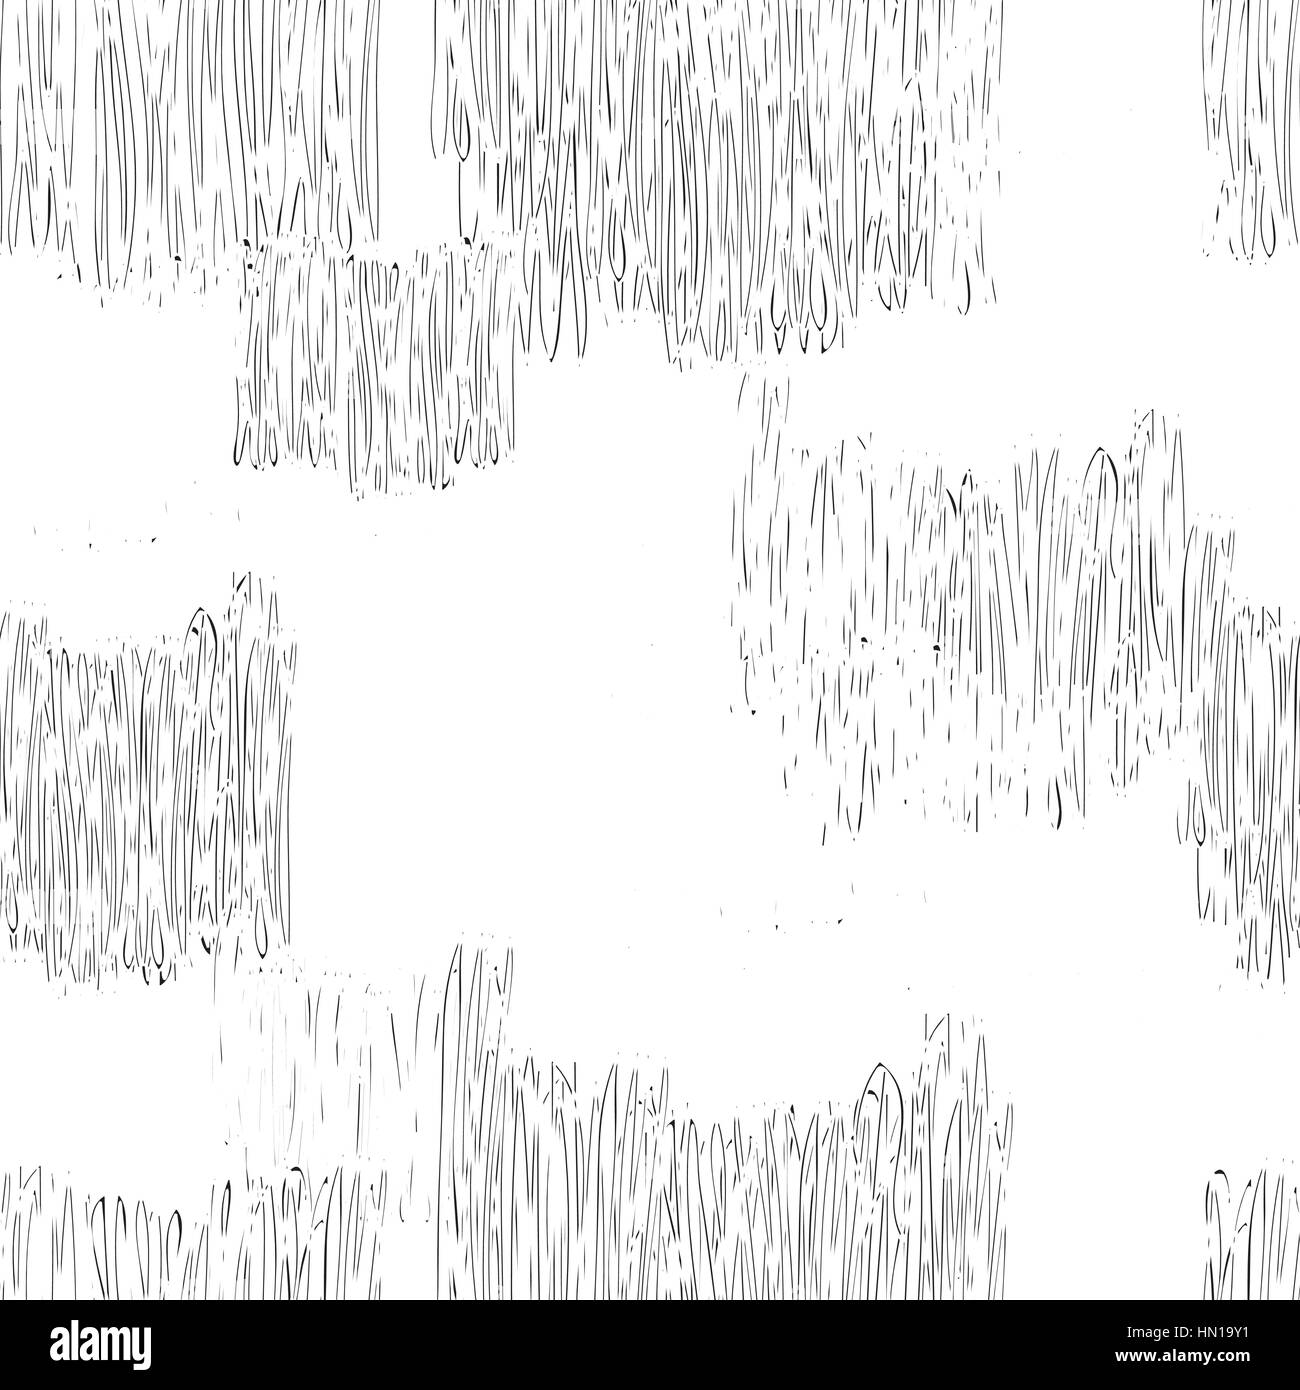 Abstract geometric seamless pattern black and white pencil